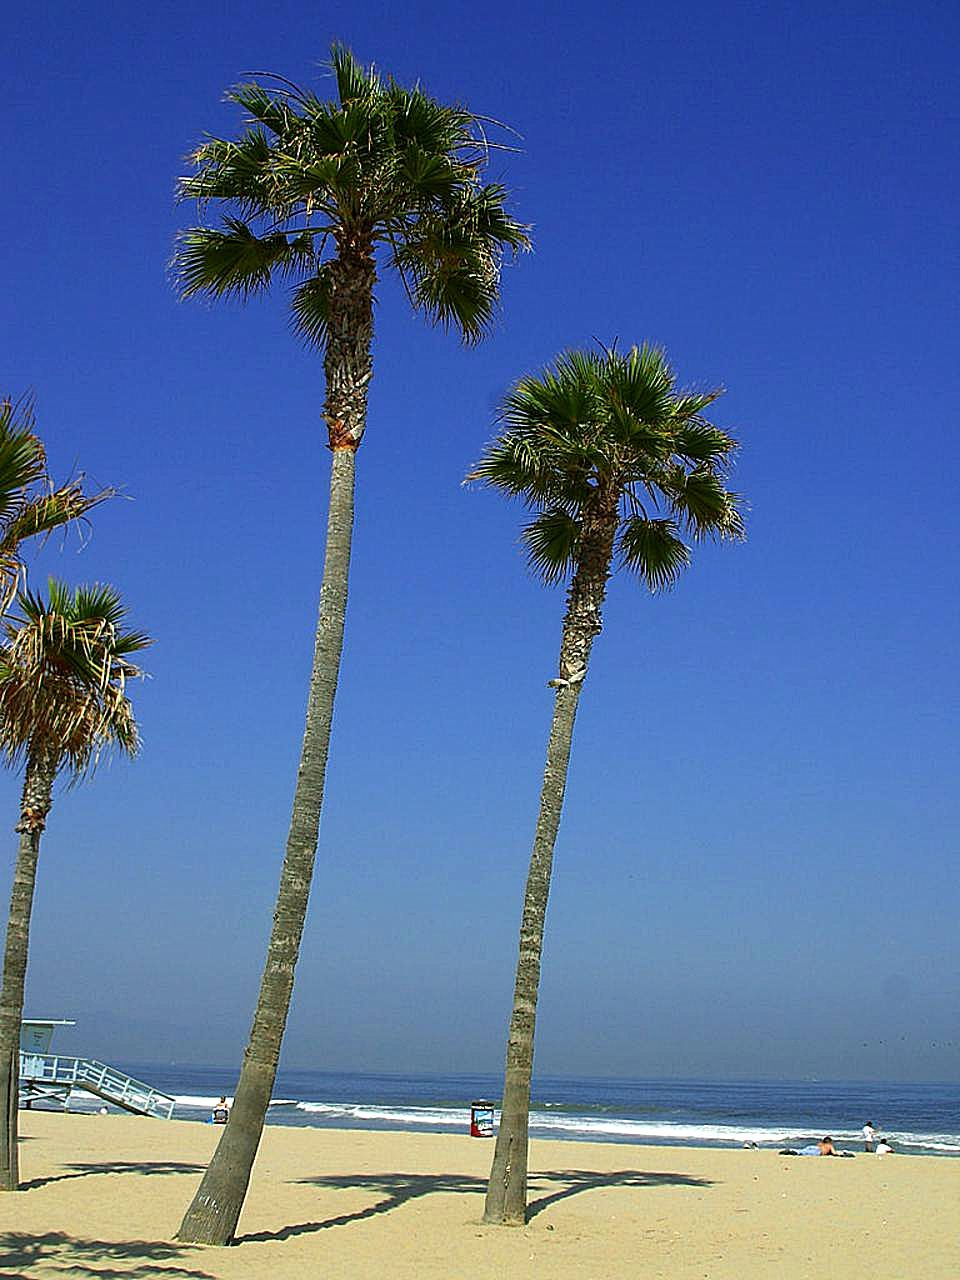 Free picture: palm trees, tropical, beach